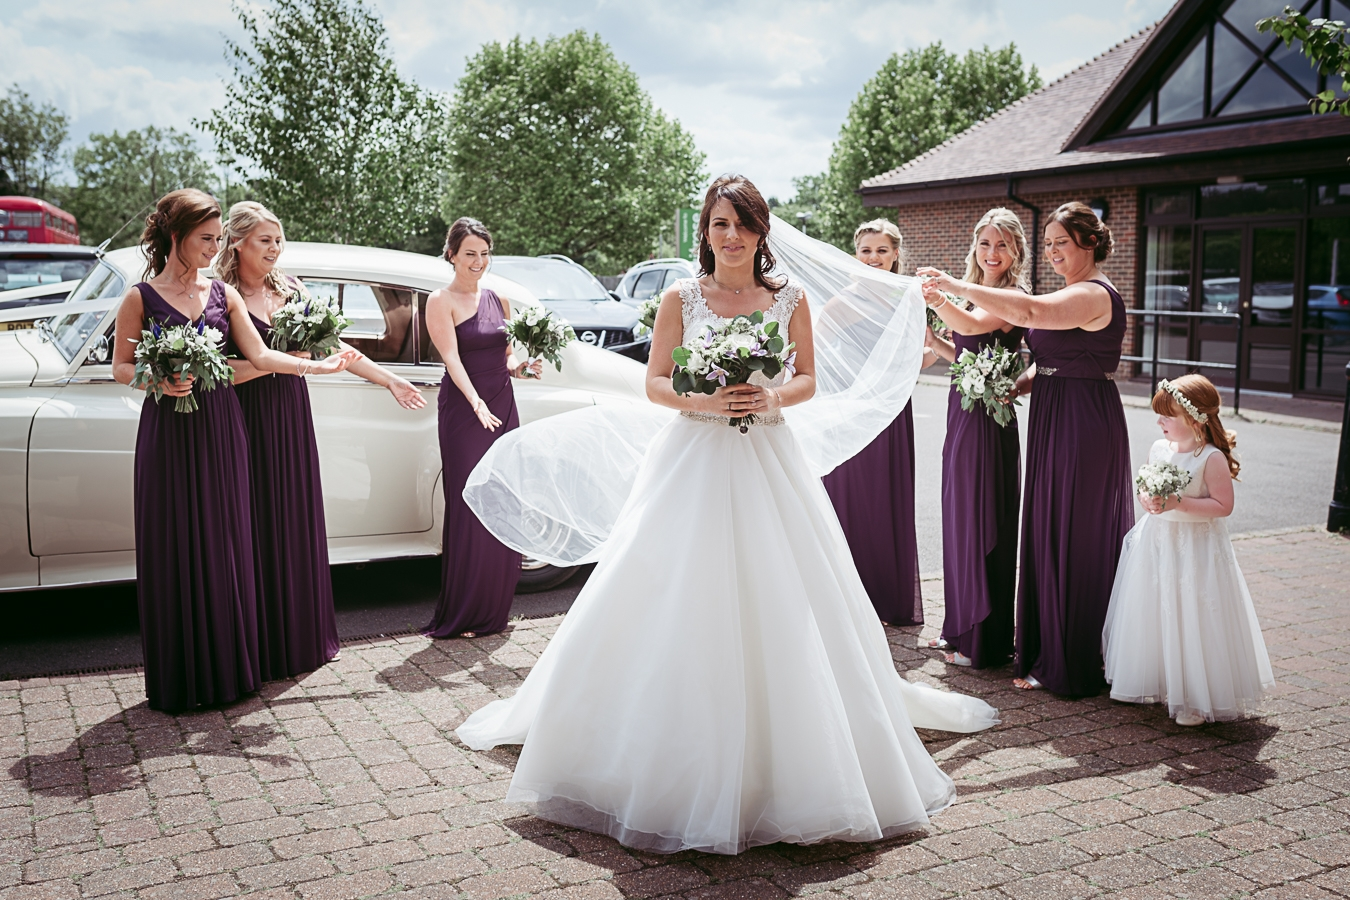 2018 06 15 Siohan  Liam Wedding MS 127 - Relaxed Summer Wedding at Stoke Place - Slough Wedding Photographer